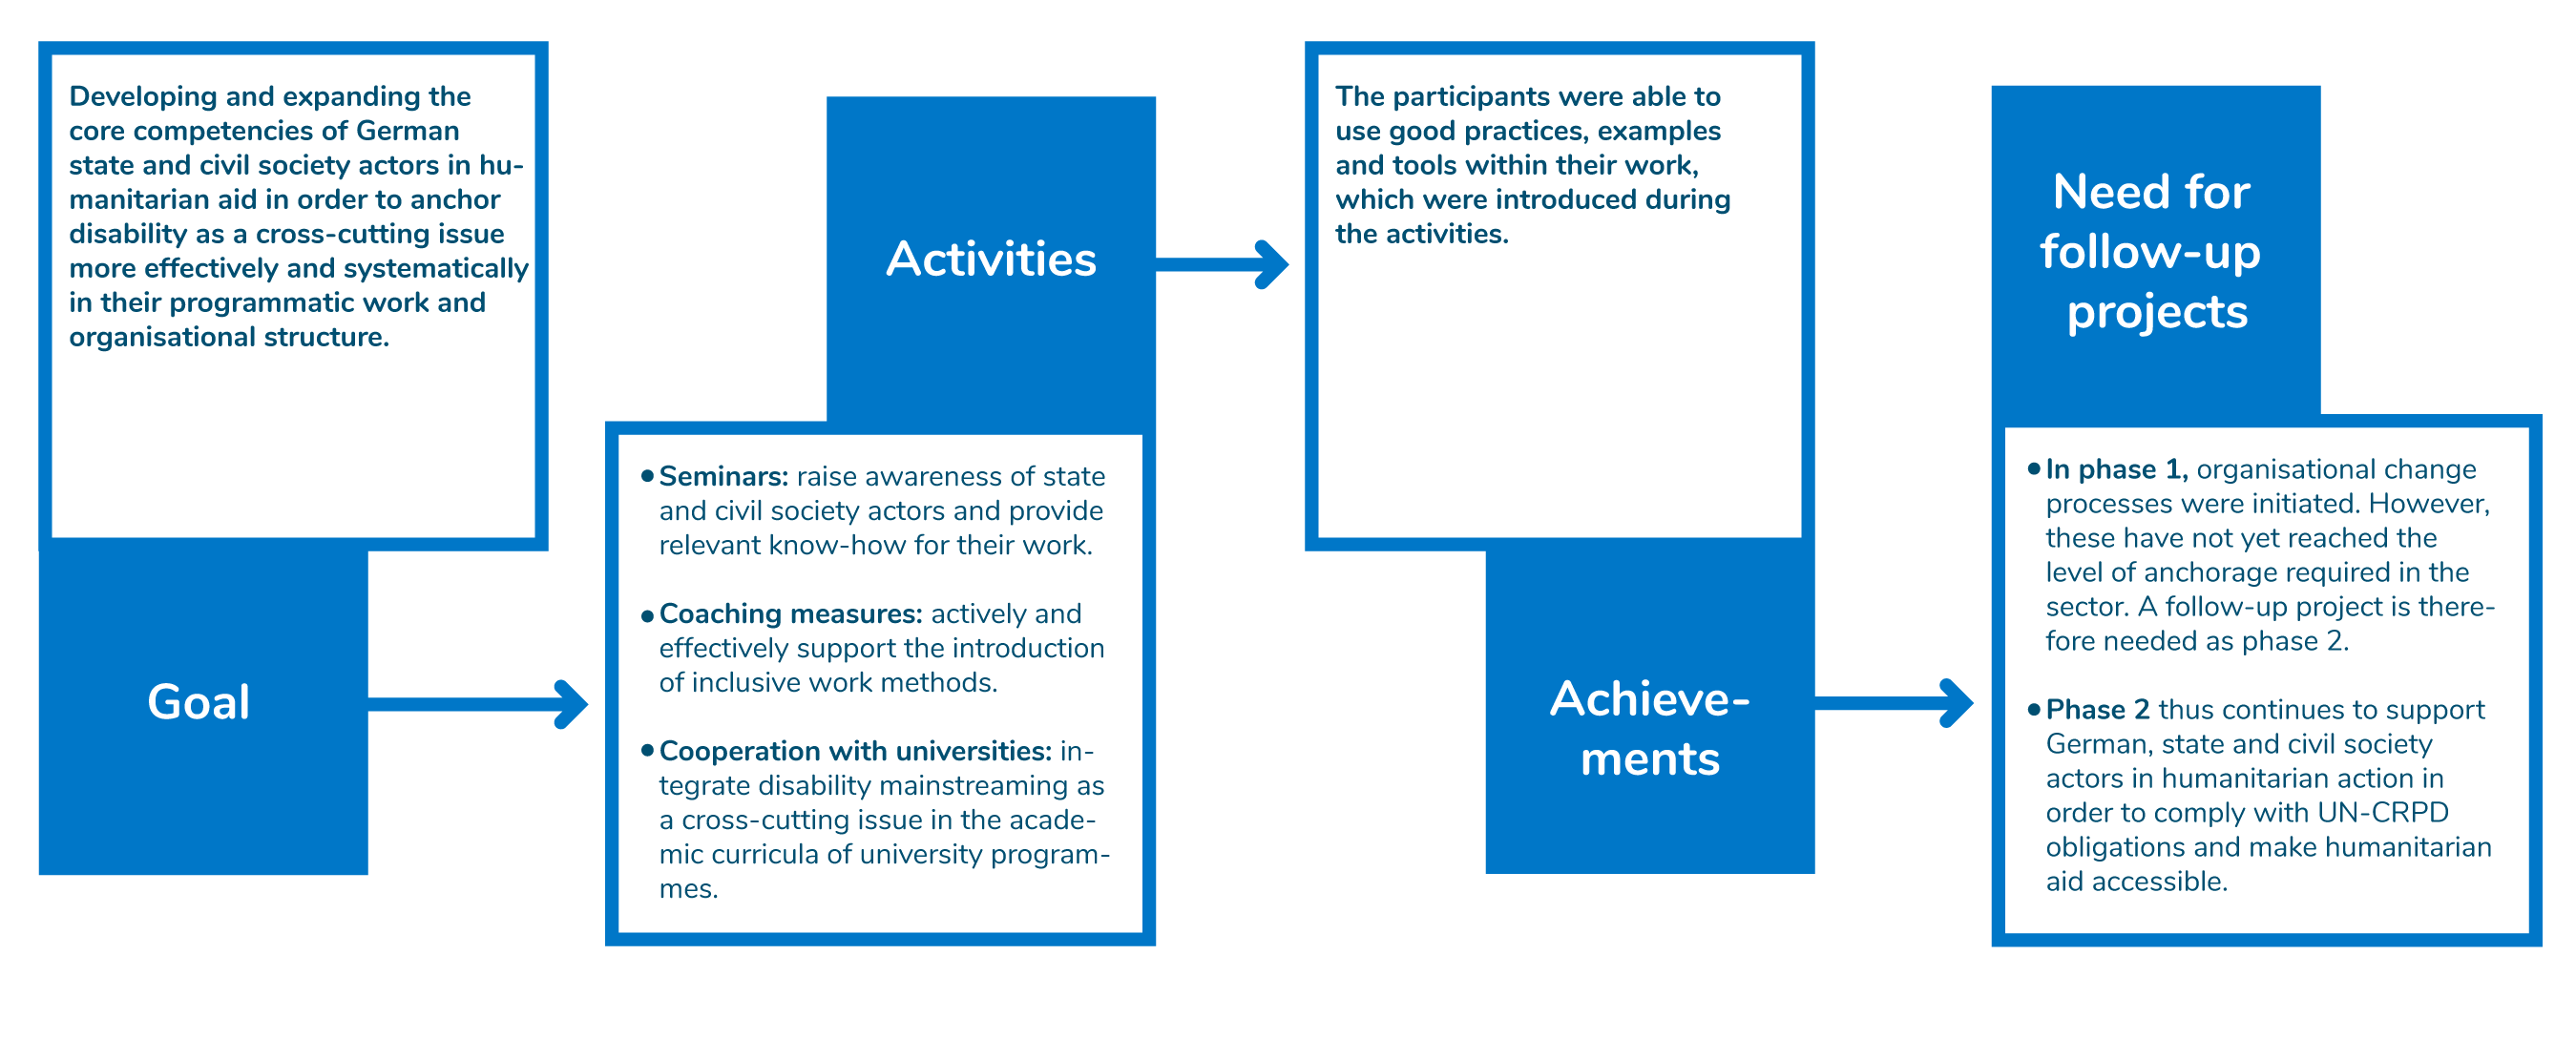 infographic about the goal, activities and successes of phase 1.